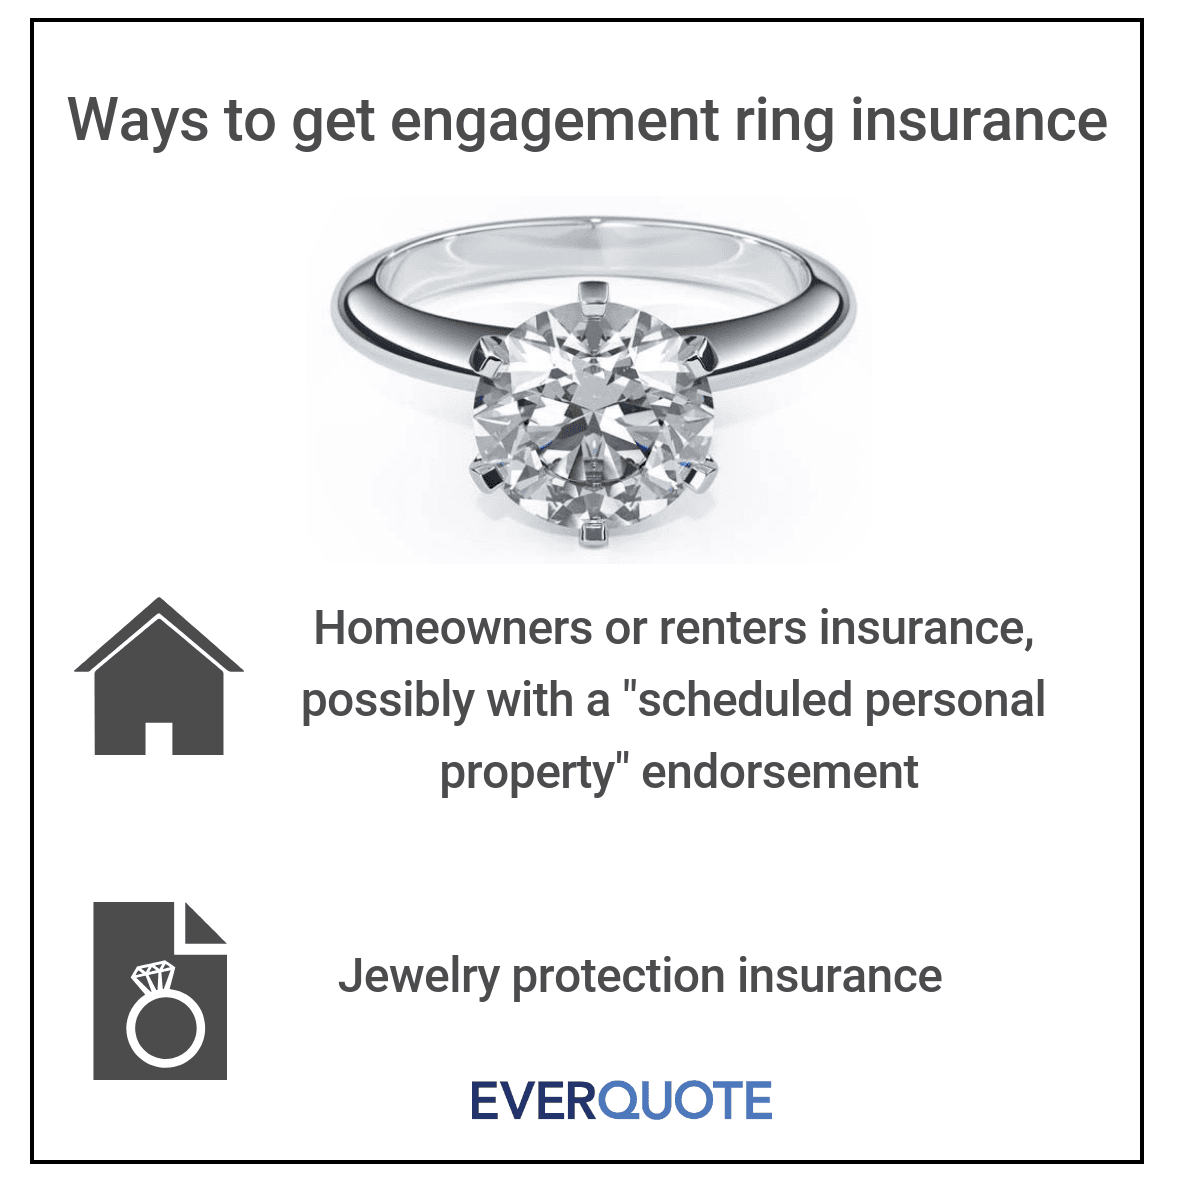 Where to find engagemet ring insurance